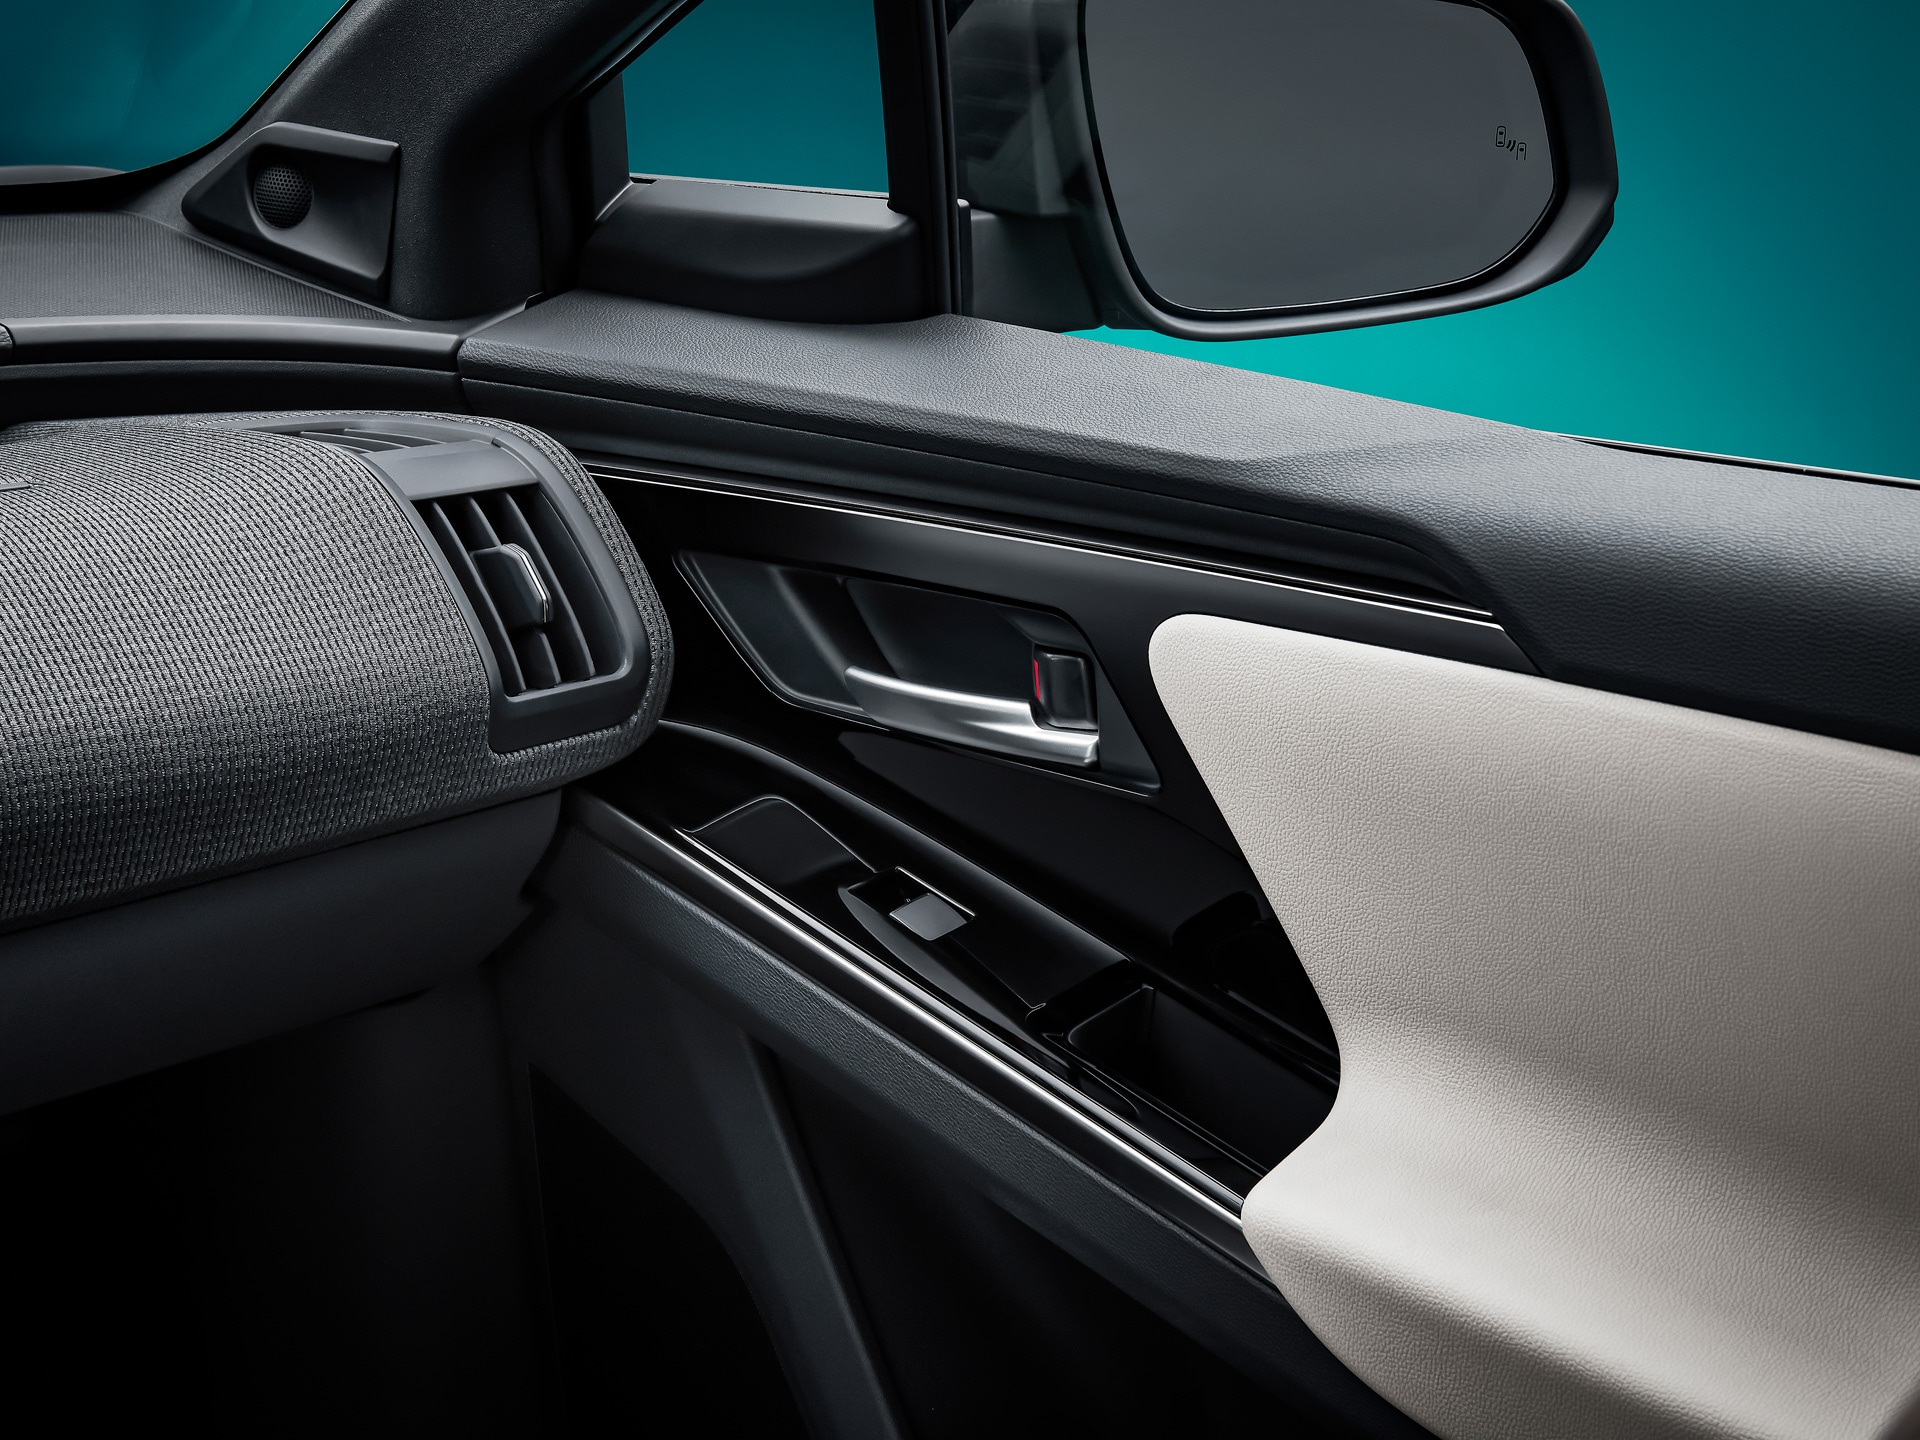 The interior gets premium upholstery material and a dual tone appearance.